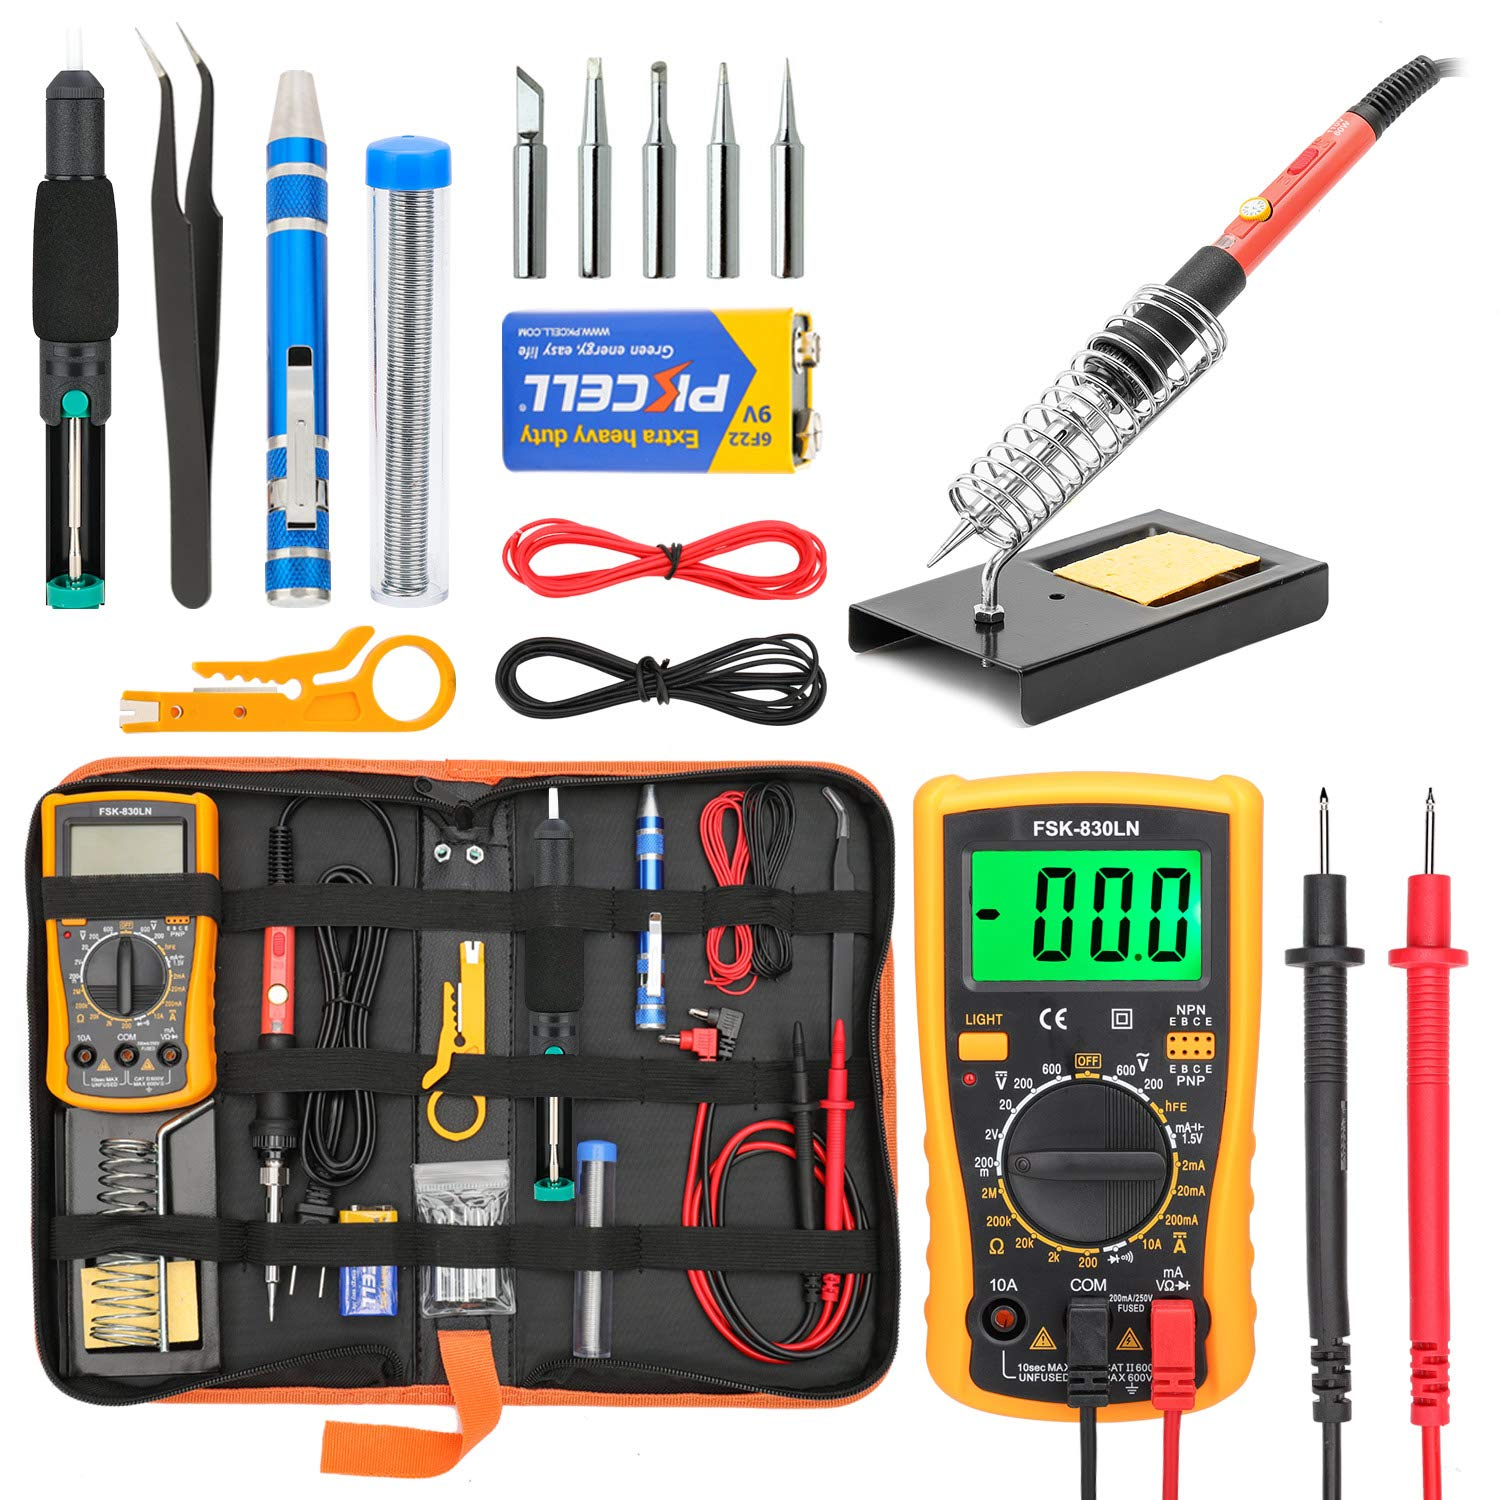 Soldering Iron Kit Electronics, Yome 19-in-1 60w Adjustable Temperature Soldering Iron